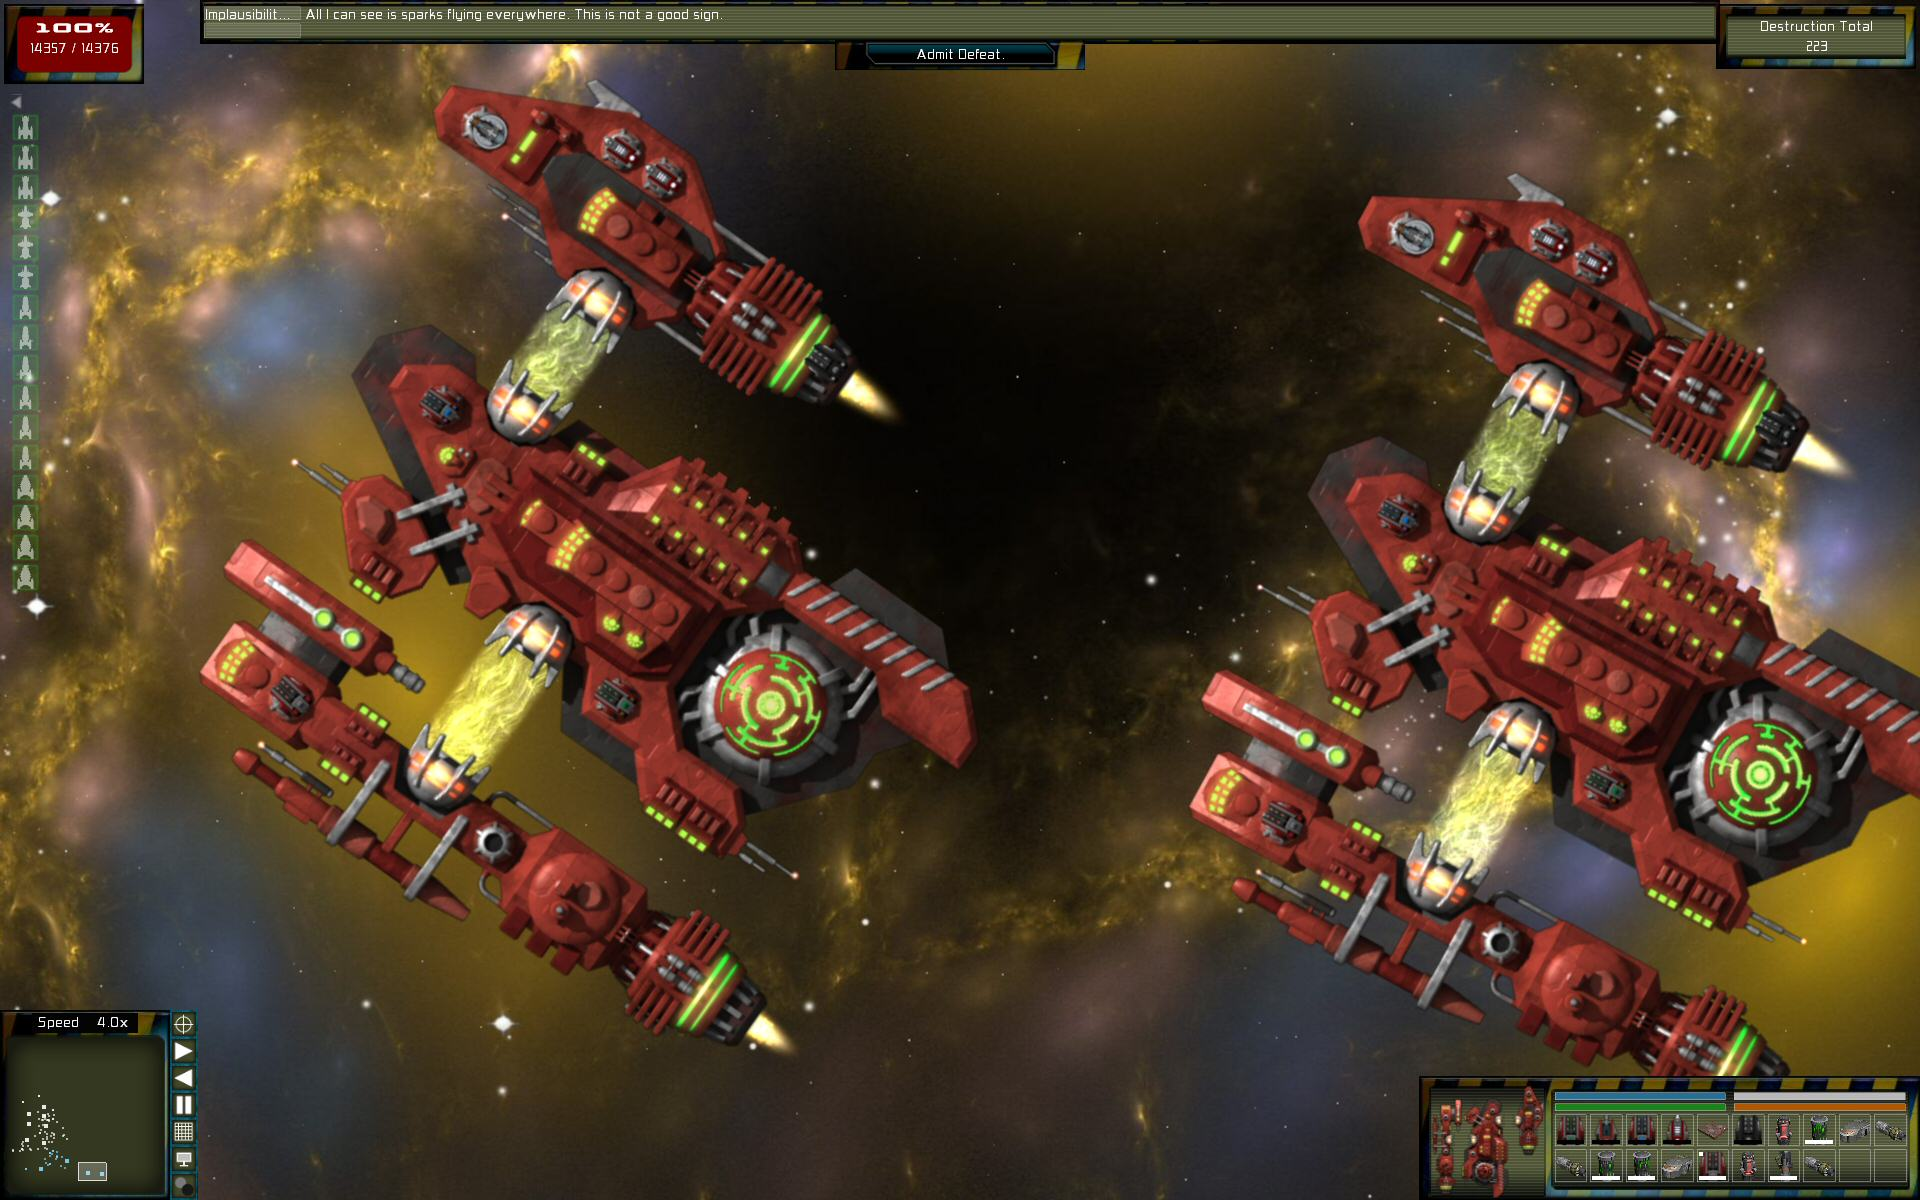 Gratuitous Space Battles: The Order screenshot